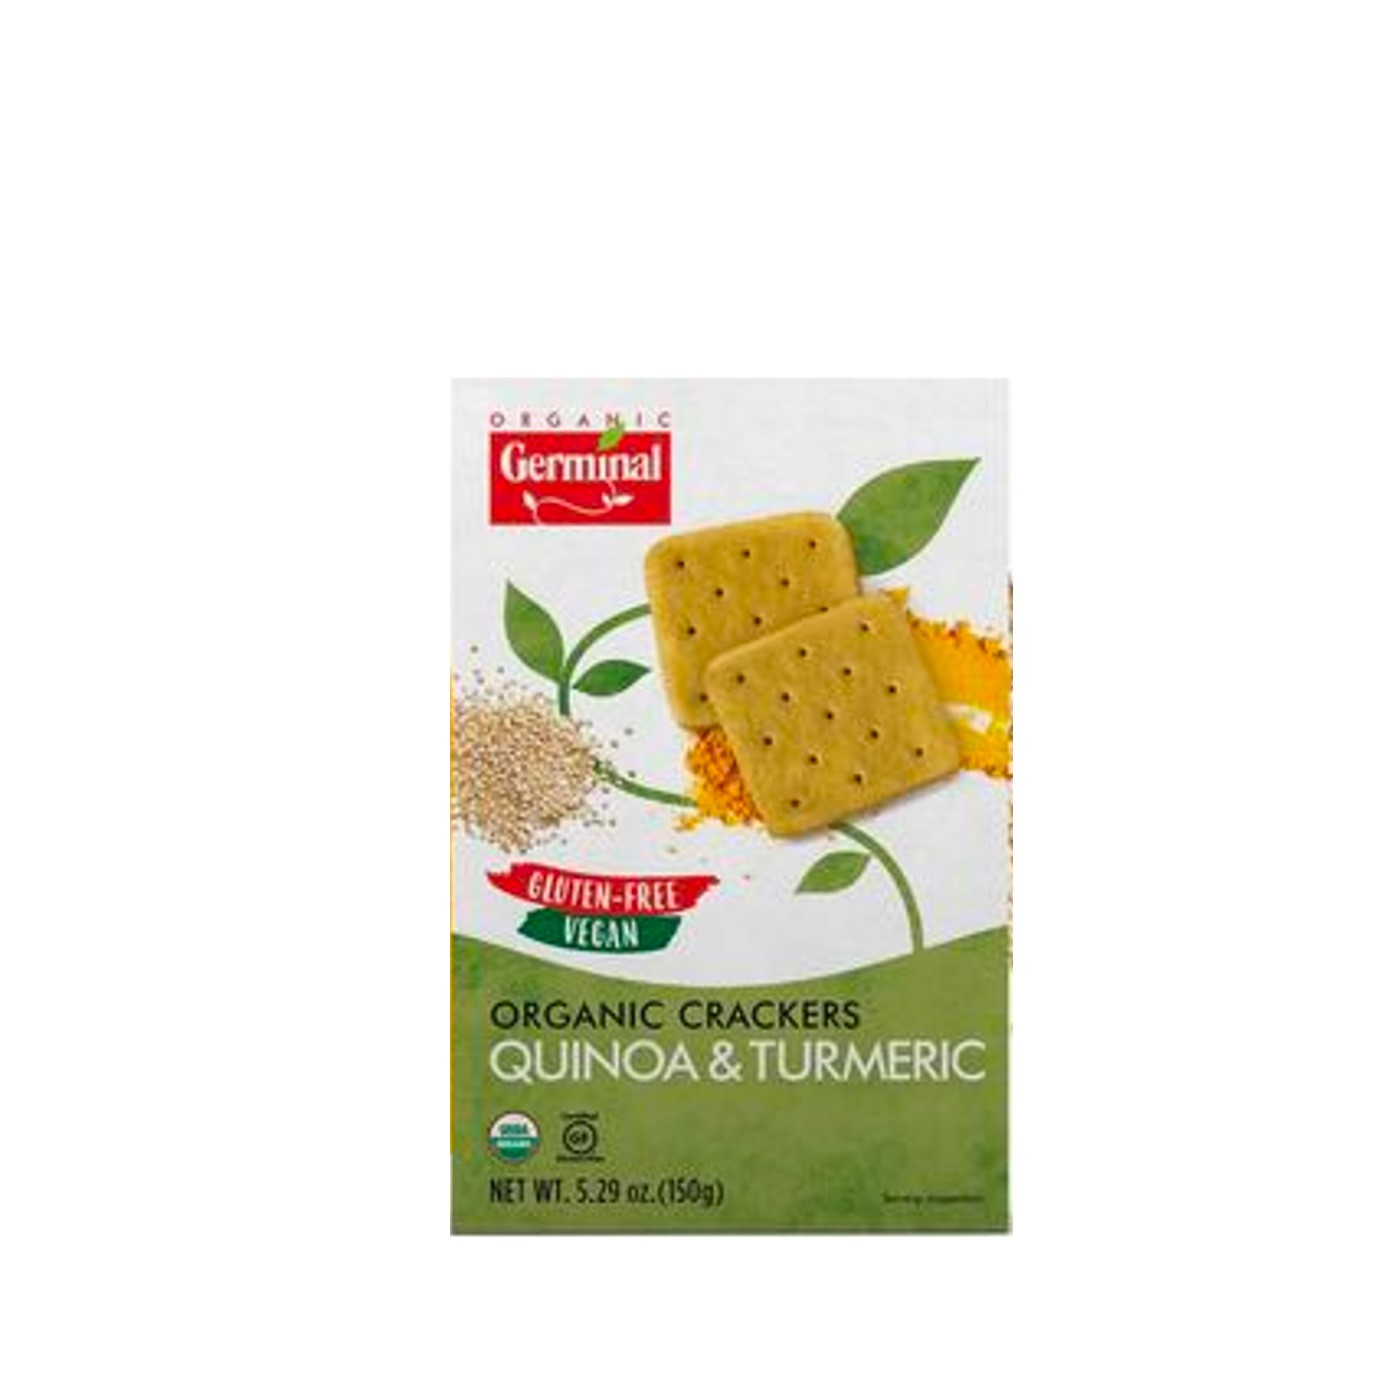 Quinoa and Tumeric Crackers 5 oz